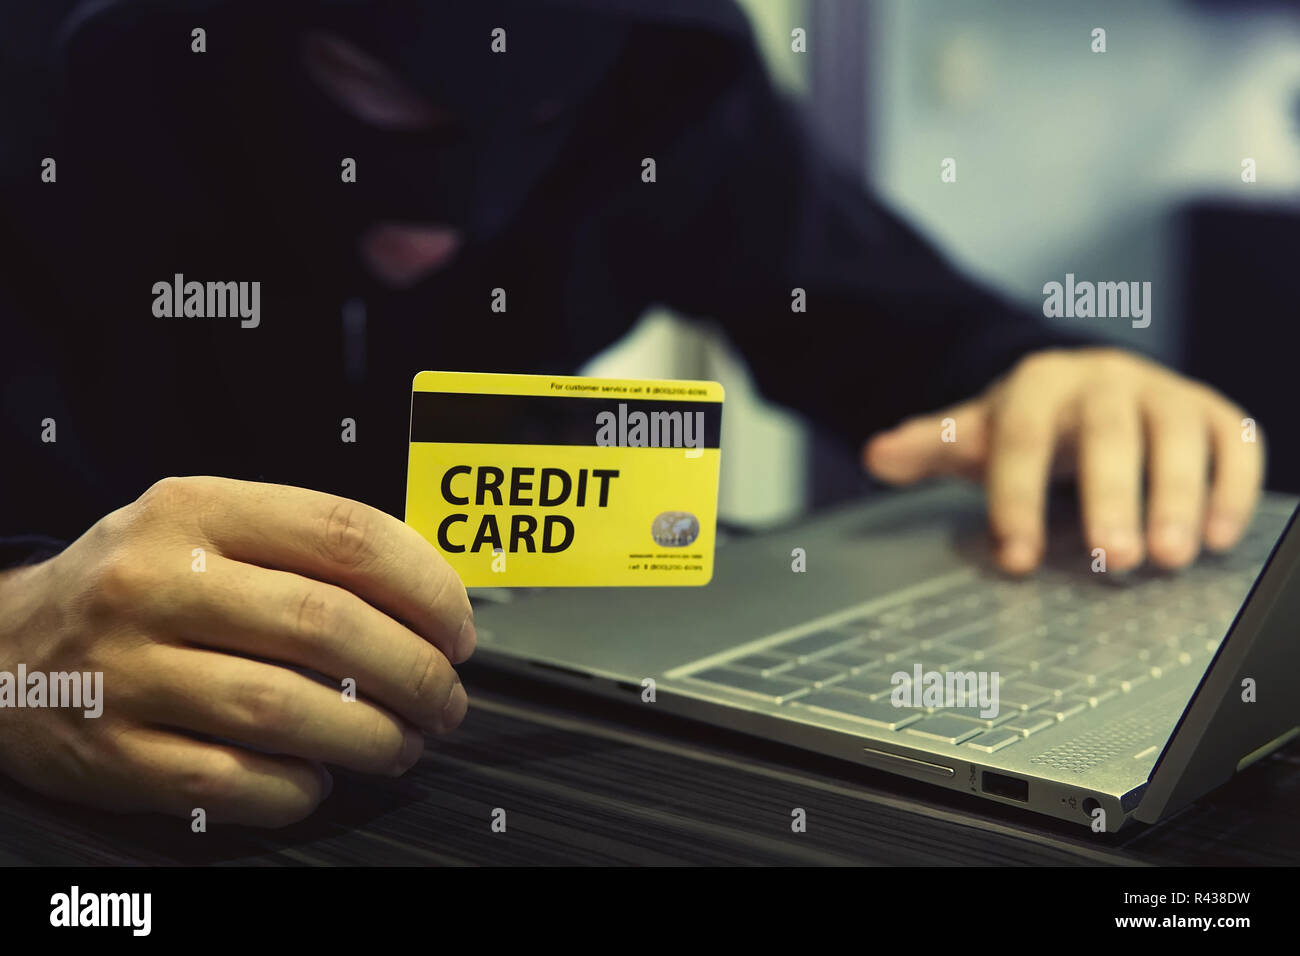 Unknown person uses computer and credit card to commit cyber crime. Computer trespasser uses internet to steal money. Drawing money from banking accou - Stock Image